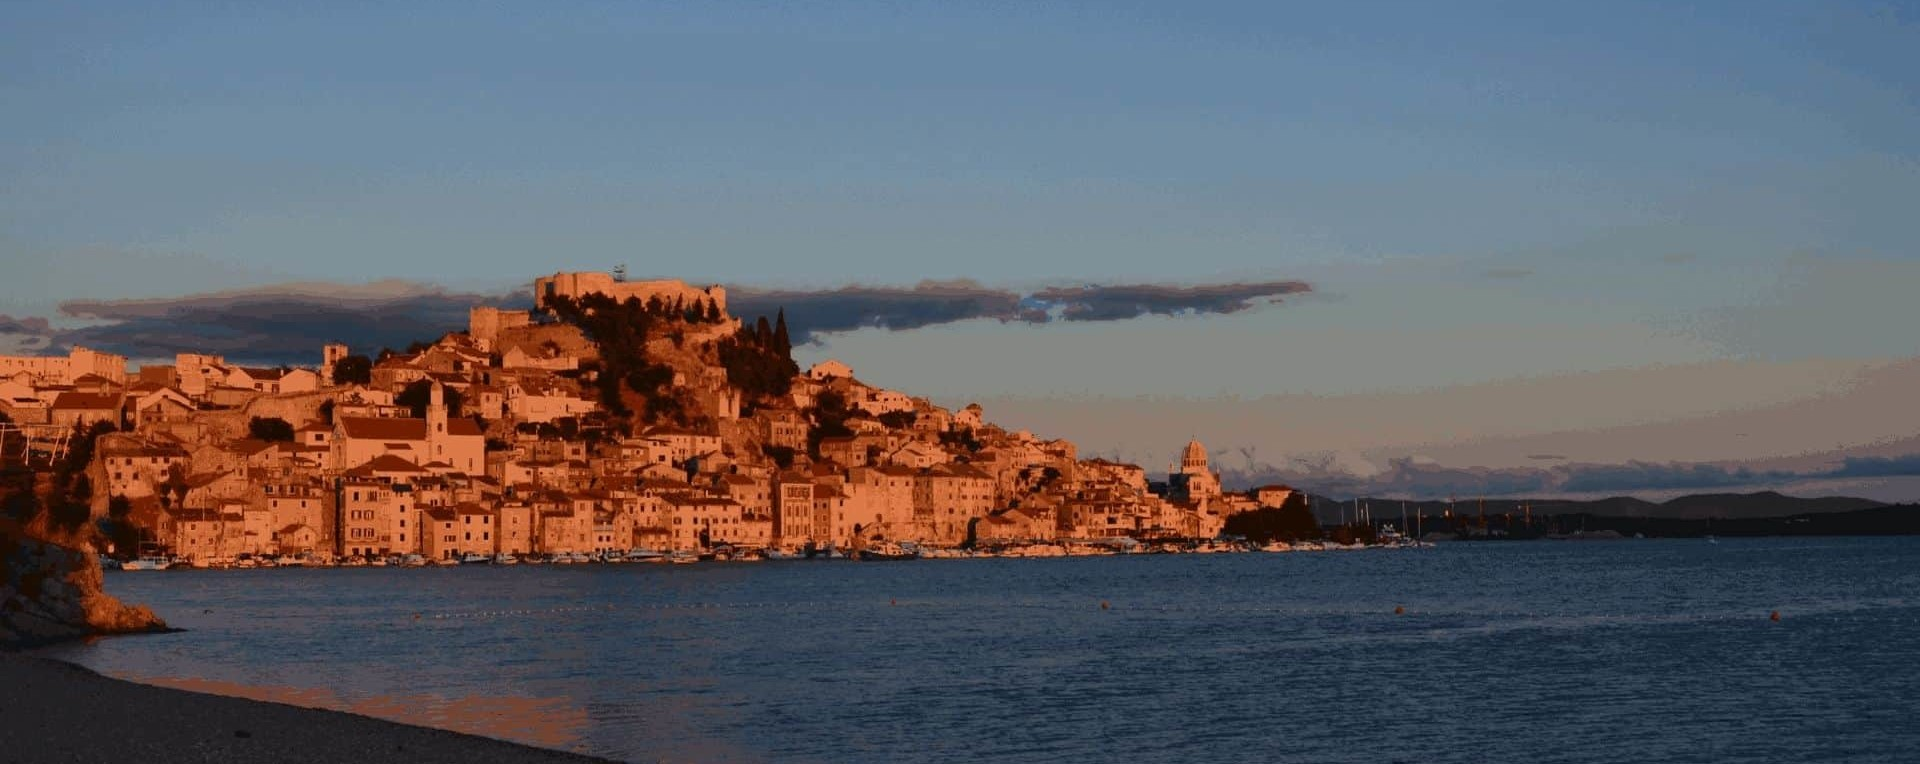 Unique view of the Sibenik old town along with Unesco protected St. James cathedral and St. Michael Fortress from Banj Beach by sunset